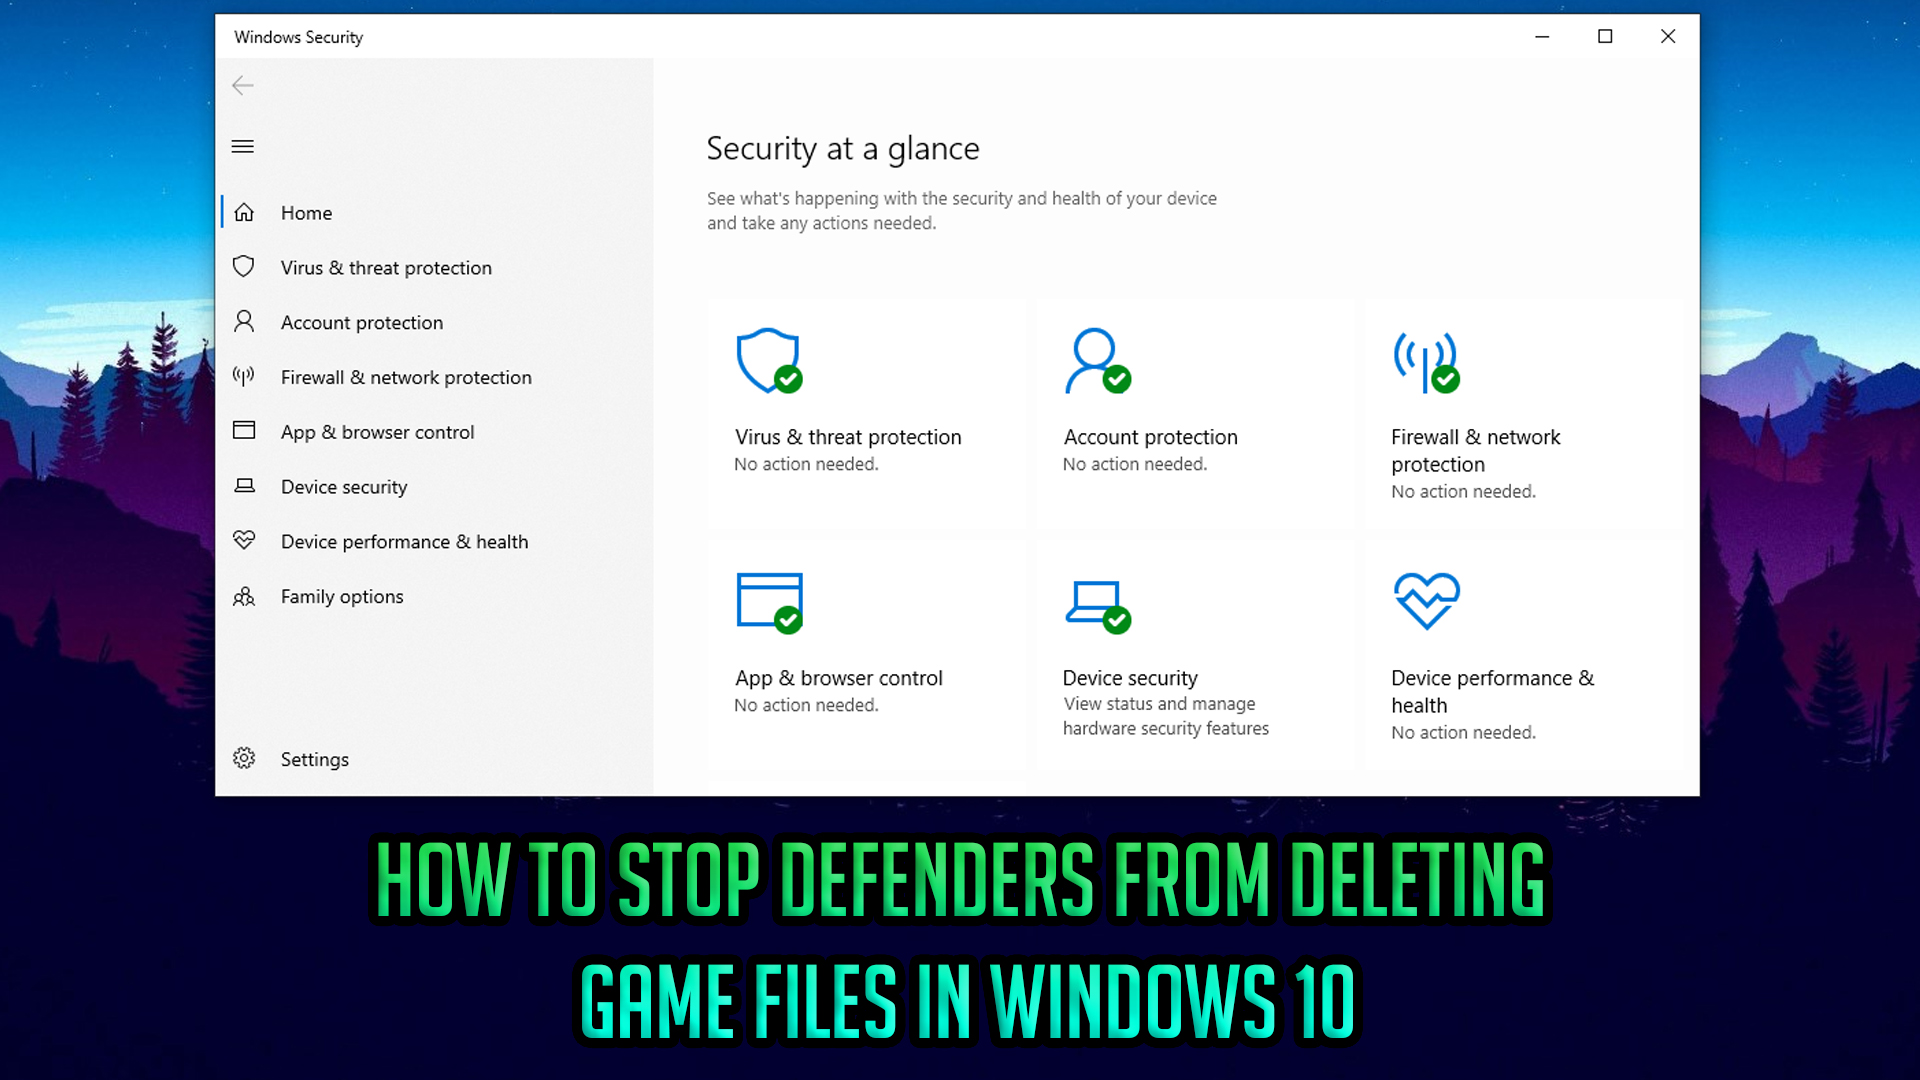 How to Stop Windows Defenders from Deleting/Blocking Game Files in Windows 10 (Defenders Removing DLL Files, Closing Program/Games) Solved! disable windows defender disable windows defender windows 10 disable windows defender windows 10 permanently disable windows defender windows 10 regedit disable windows defender windows 7 disable windows defender smartscreen disable windows defender software disable windows defender cmd how to disable windows defender disable windows defender antivirus service disable windows defender antivirus disable windows defender application guard disable windows defender app disable windows defender antimalware service disable windows defender application control disable windows defender auto scan disable windows defender advanced threat protection disable the windows defender disable the windows defender service disable windows defender batch file disable windows defender by group policy disable windows defender by cmd disable windows defender by regedit disable windows defender background scan disable windows defender by powershell disable windows defender bitdefender disable windows defender batch script disable windows defender credential guard disable windows defender command line disable windows defender credential guard for a virtual machine disable windows defender completely disable windows defender credential guard for a virtual machine vmware disable windows defender c# disable windows defender cli disable windows defender command line access denied disable windows defender download disable windows defender device guard disable windows defender definition updates remove windows defender definitions disable windows defender access denied disable windows defender registry download disable windows defender active directory group policy disable windows defender rubber ducky disable windows defender exe disable windows defender entirely disable windows defender exploit guard disable windows defender eset disable windows defender ent